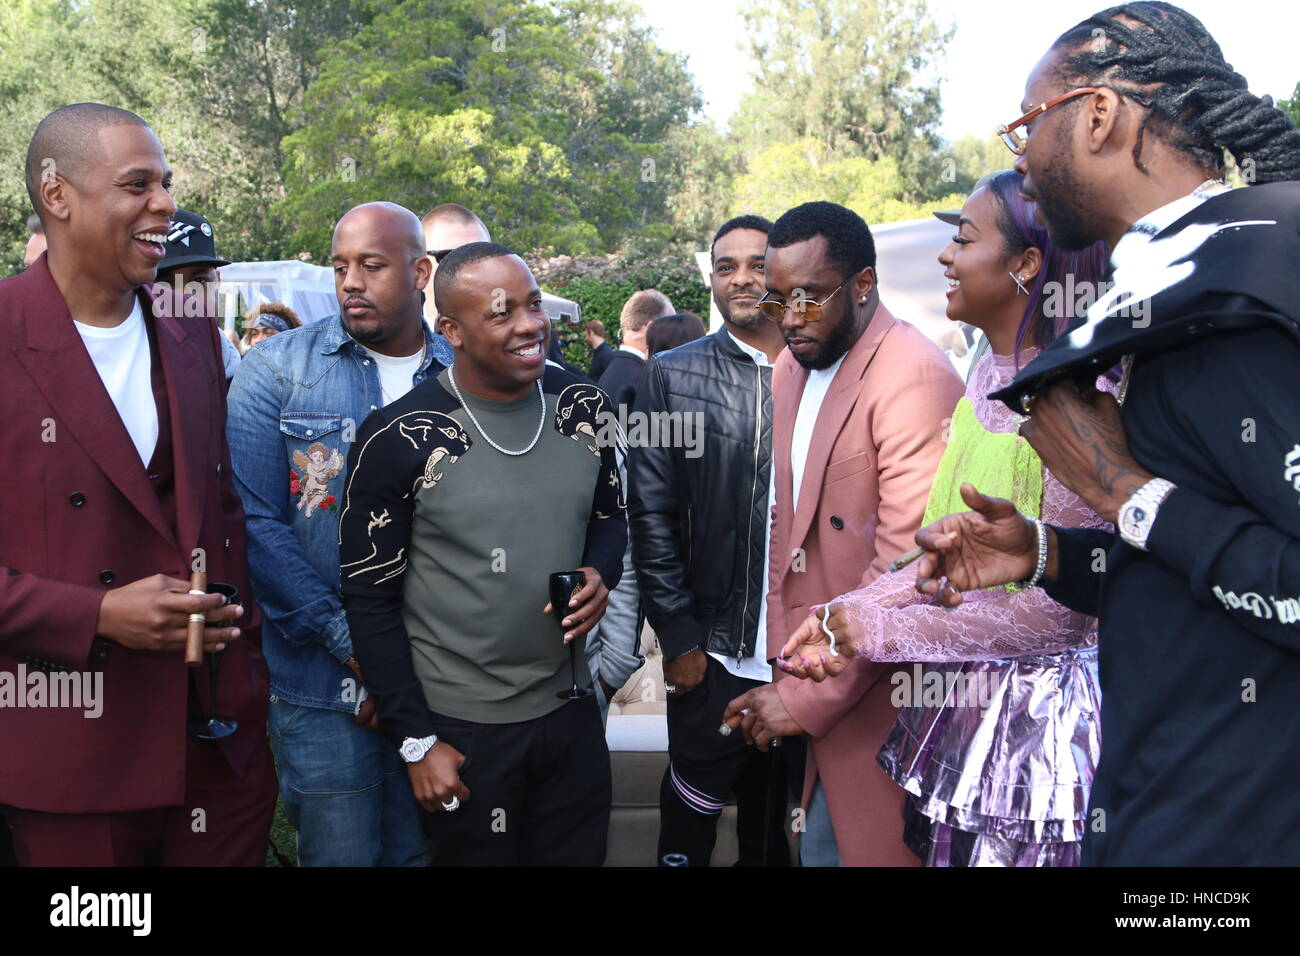 Holmby Hills, Ca. 11th Feb, 2017. Jay-Z, Sean Combs and 2 Chainz at the 2017 Roc Nation Pre-Grammy Brunch at a private - Stock Image